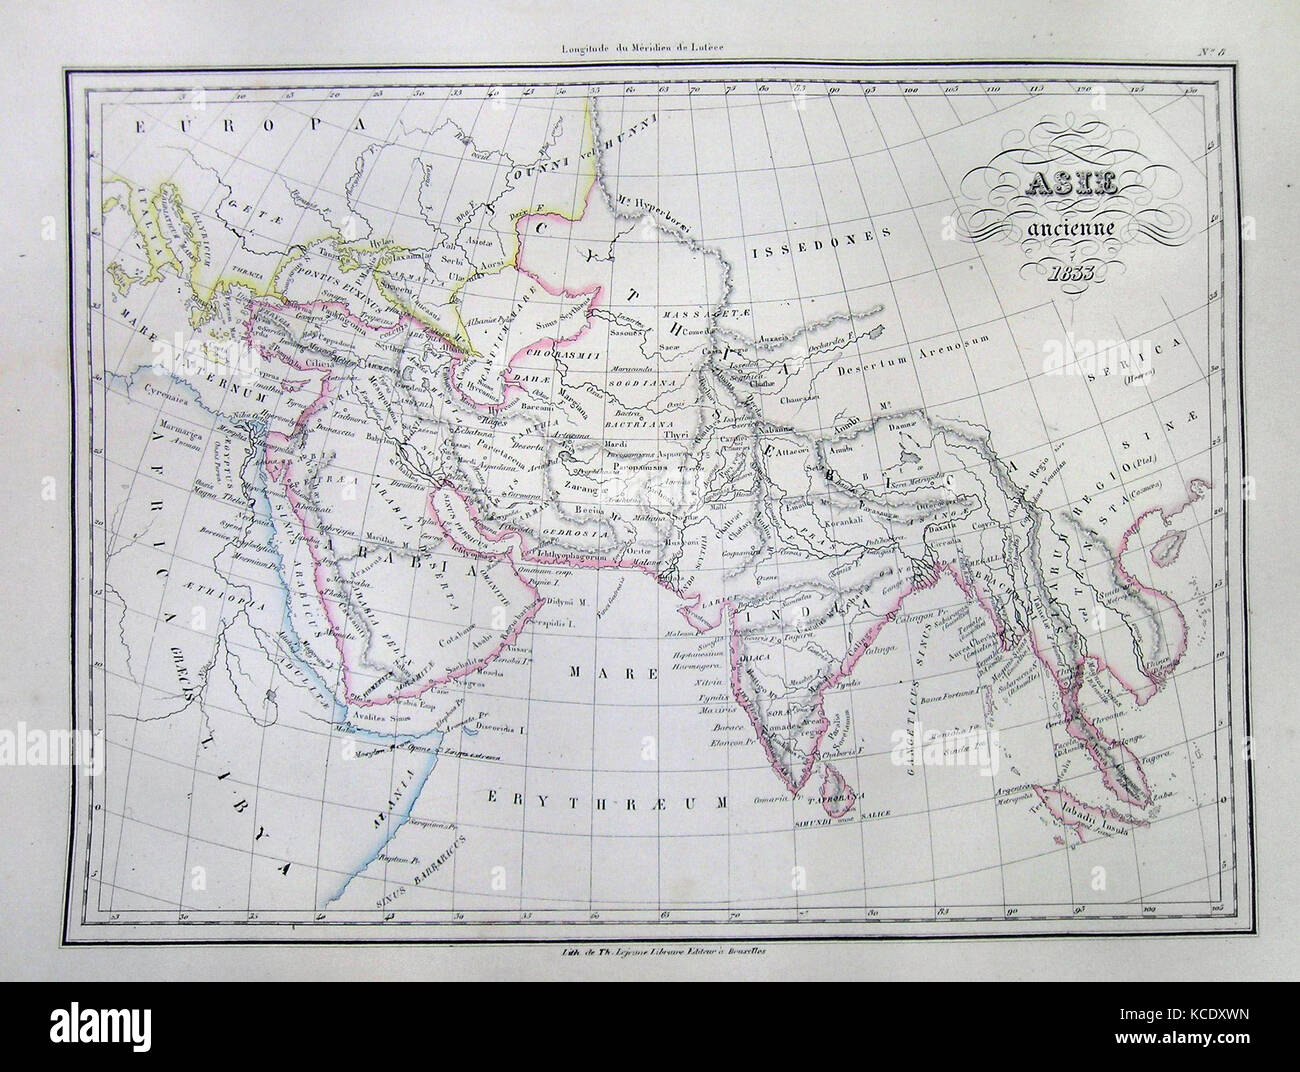 1833, Malte-Brun Map of Asia in Ancient Times - Stock Image